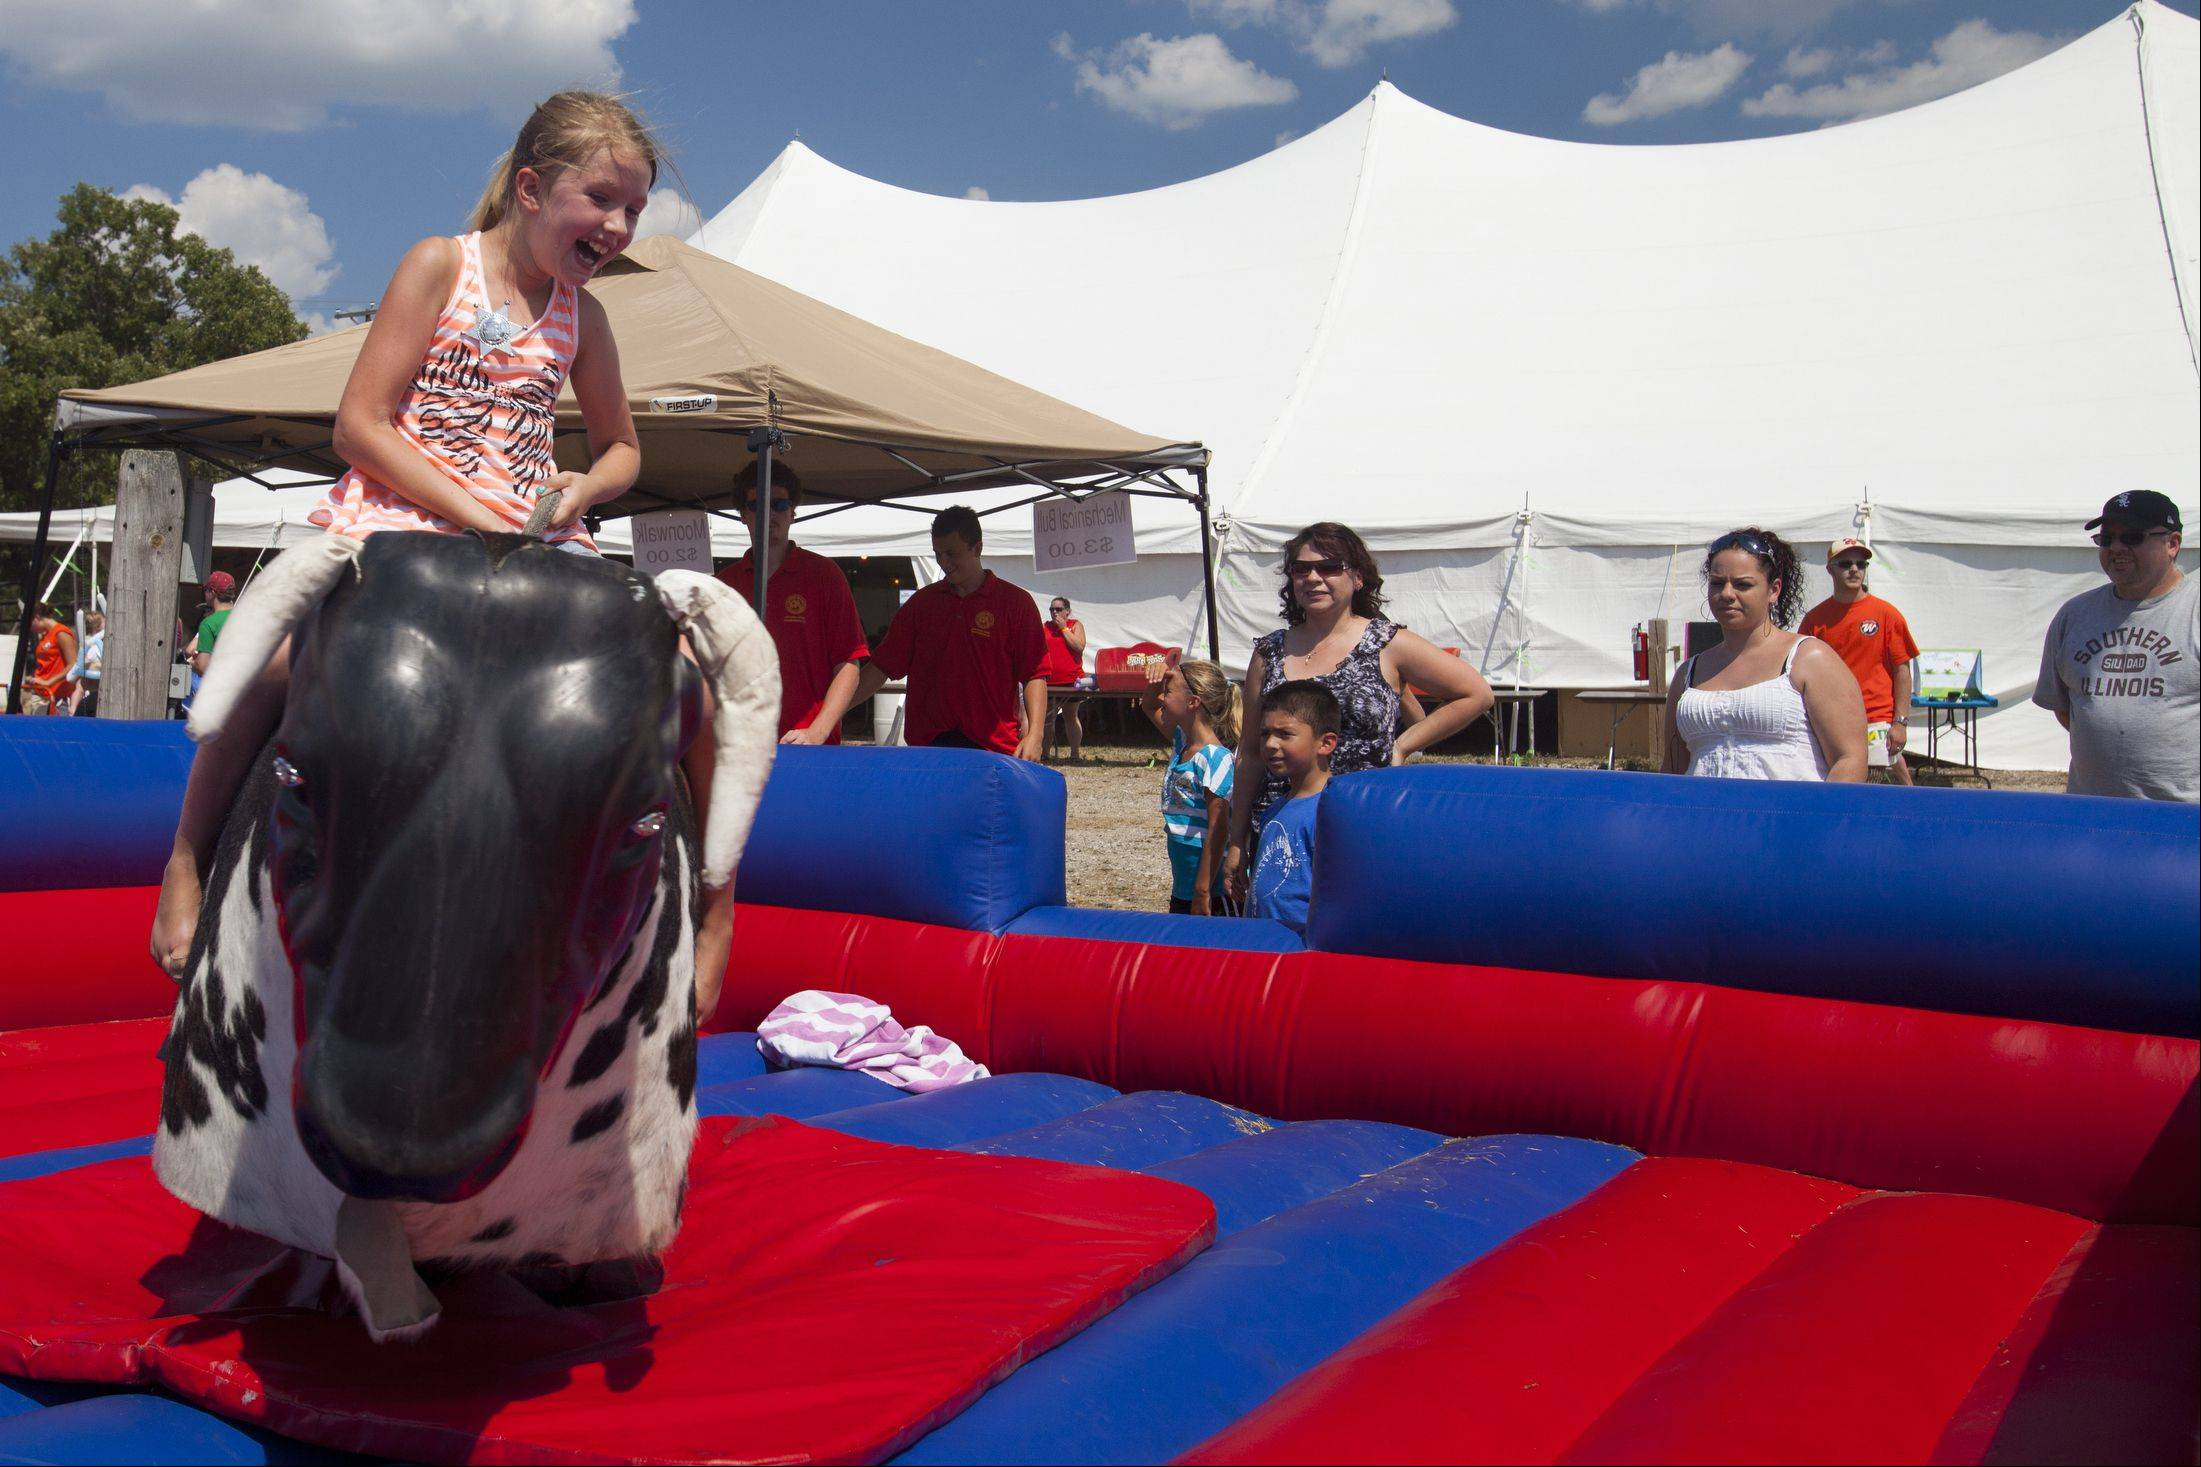 Ariana Hatfield, 8, of Wauconda rides a mechanical bull Sunday before the start of the 49th IPRA Championship Rodeo at Golden Oaks Rodeo Grounds in Wauconda.